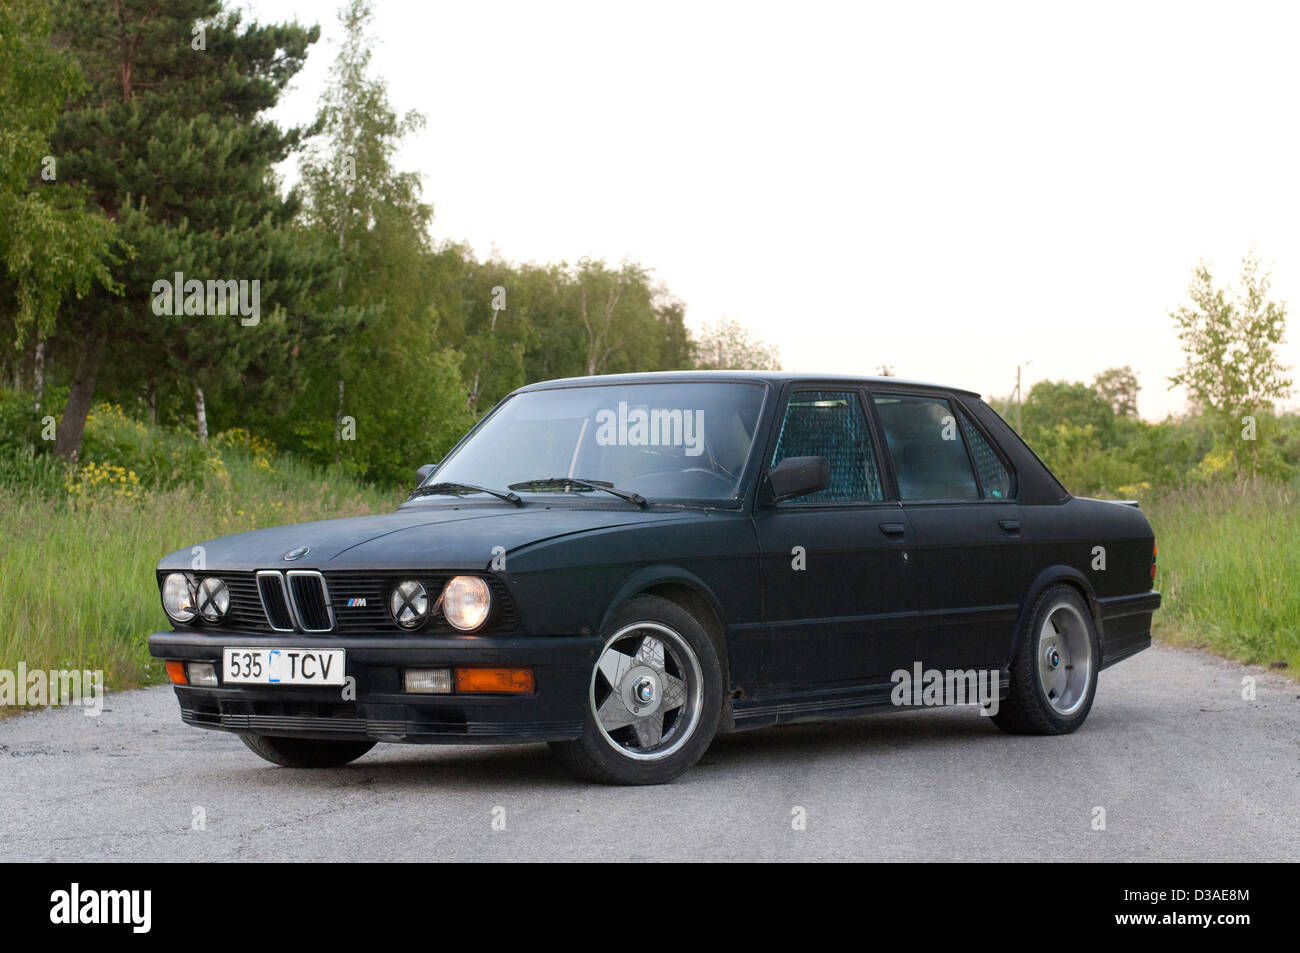 oldtimer bmw stockfotos oldtimer bmw bilder seite 12 alamy. Black Bedroom Furniture Sets. Home Design Ideas